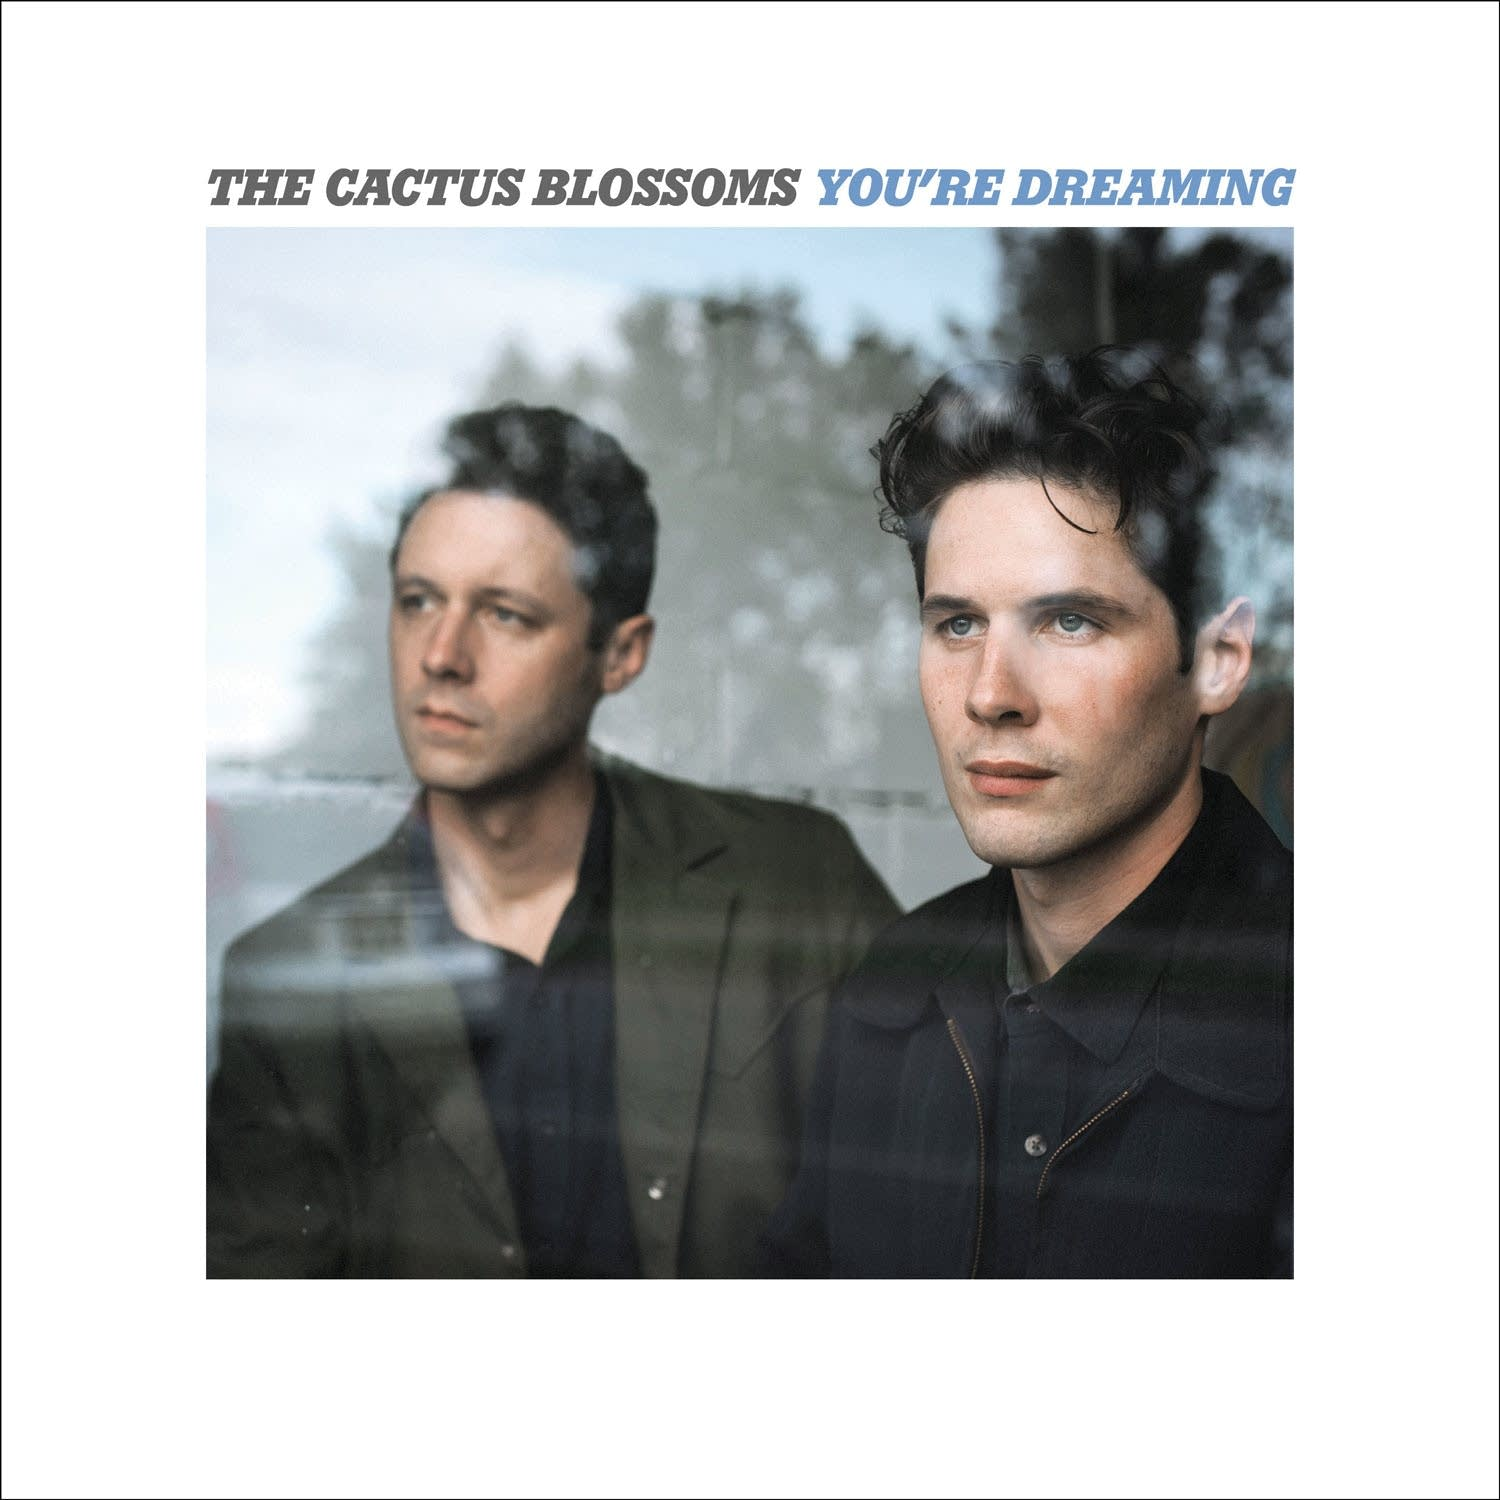 The Cactus Blossoms, 'You're Dreaming'